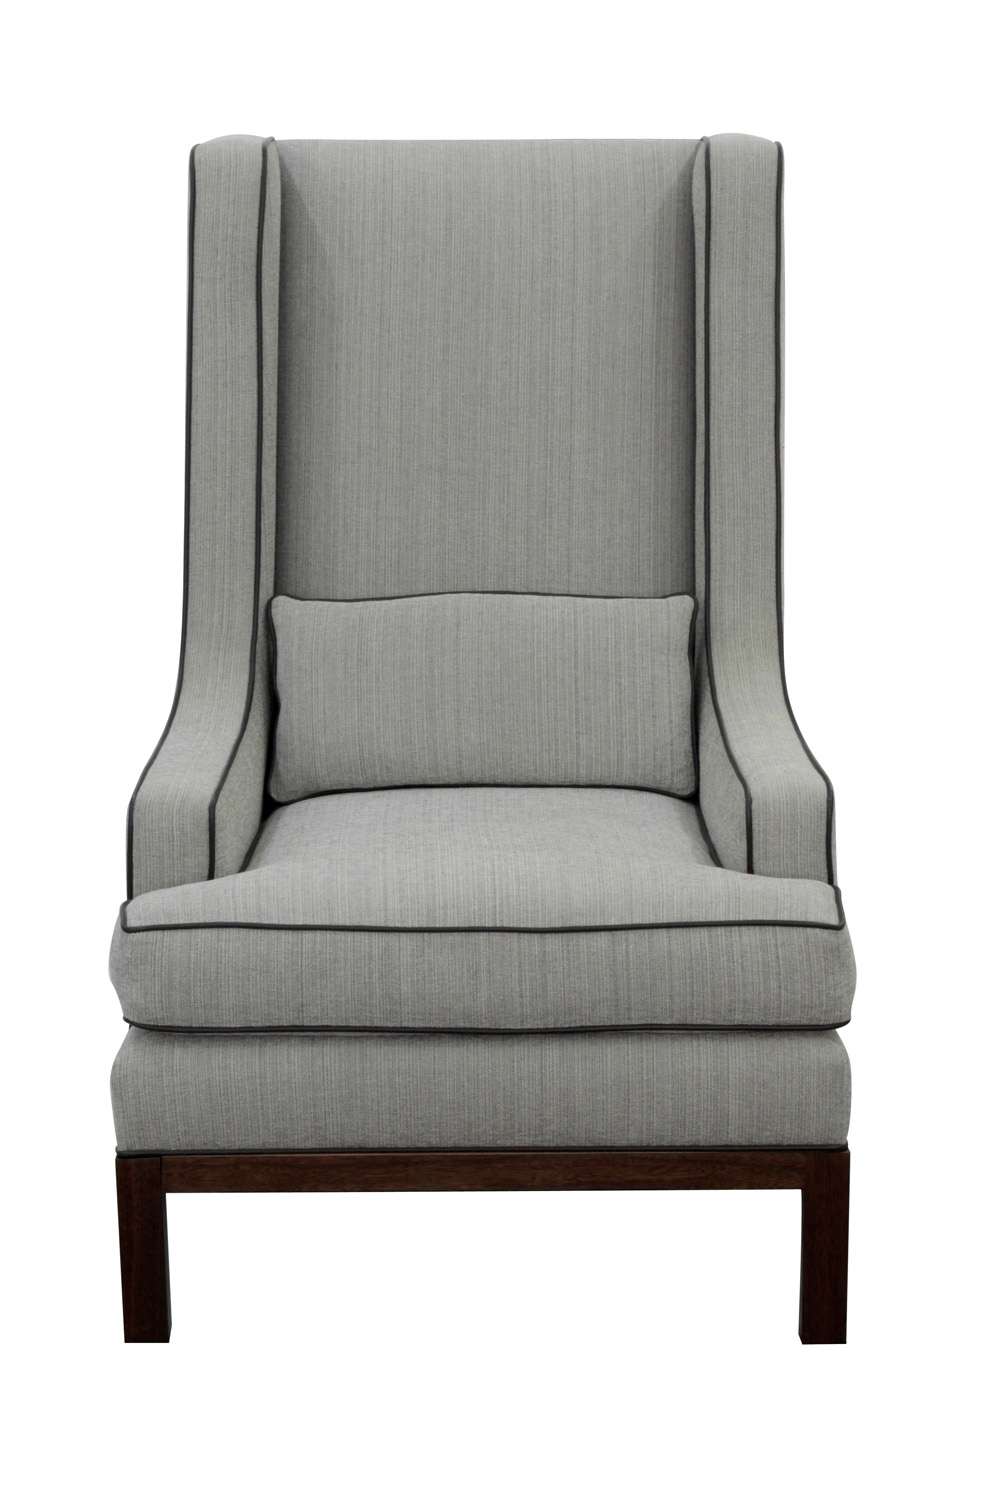 T Hayes12 lrg club chairs loungechairs137 detail4 hires.jpg